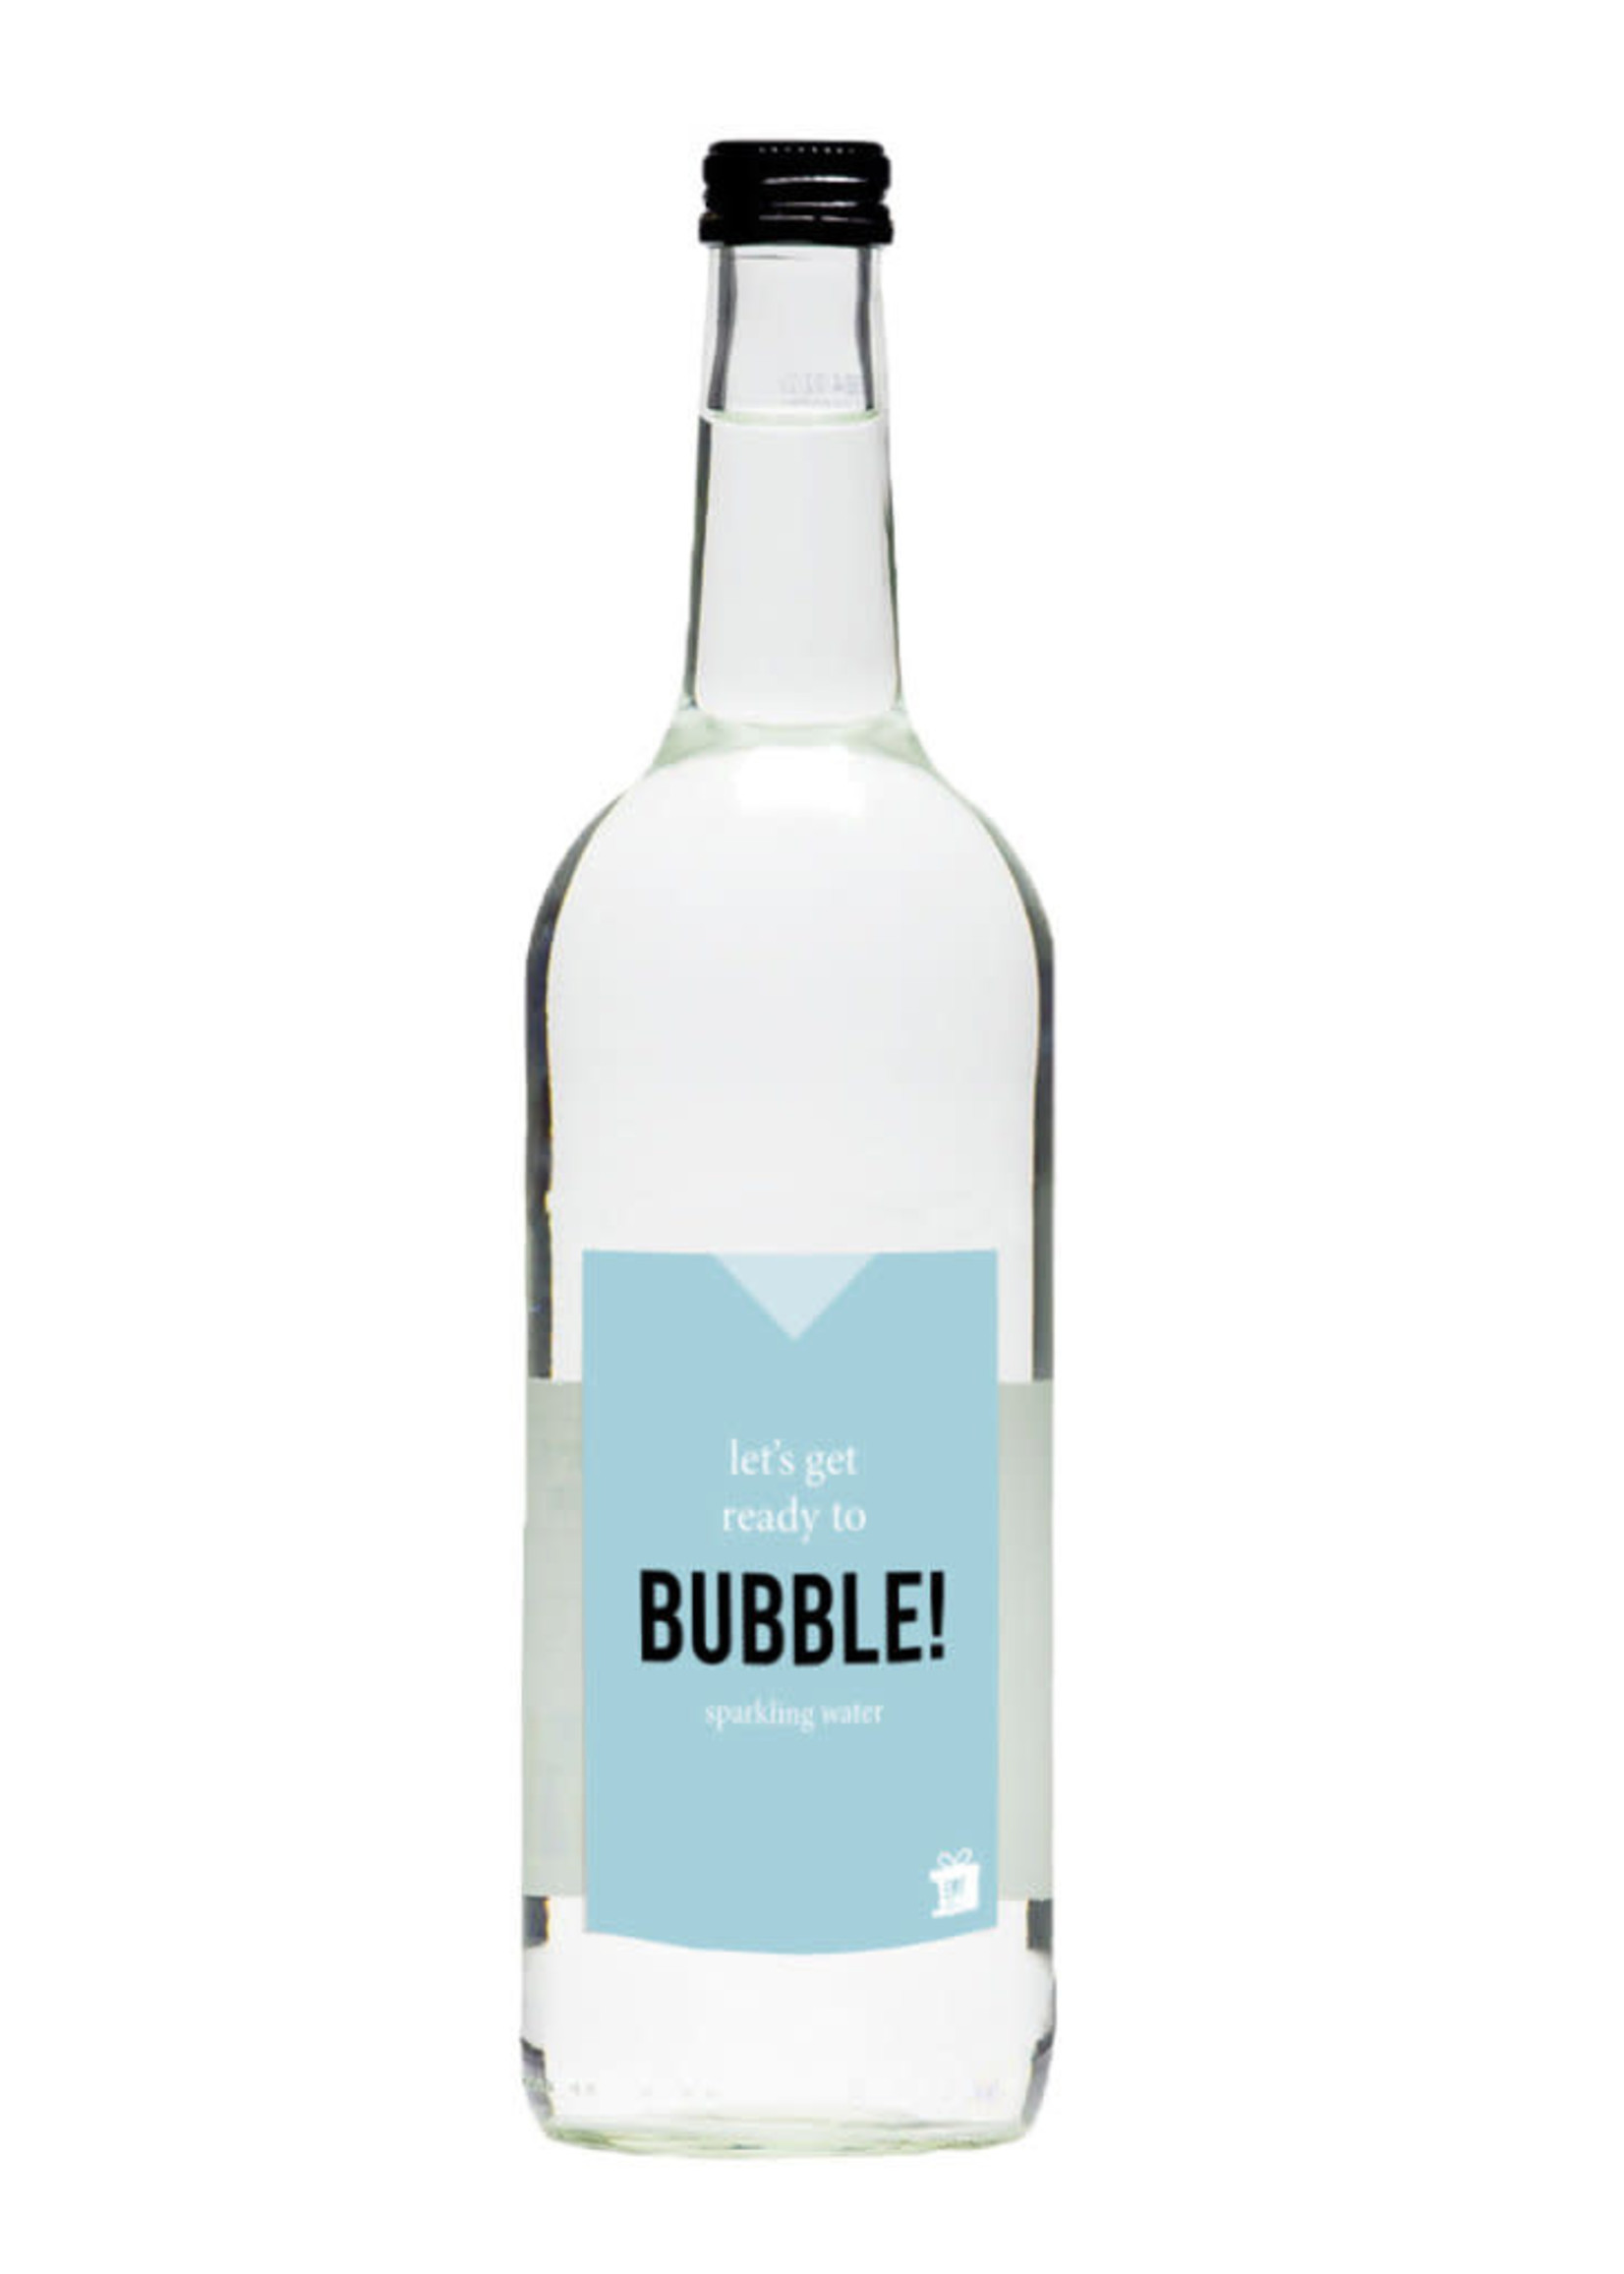 Geven is Leuker Eat your present LET'S GET READY TO BUBBLE!